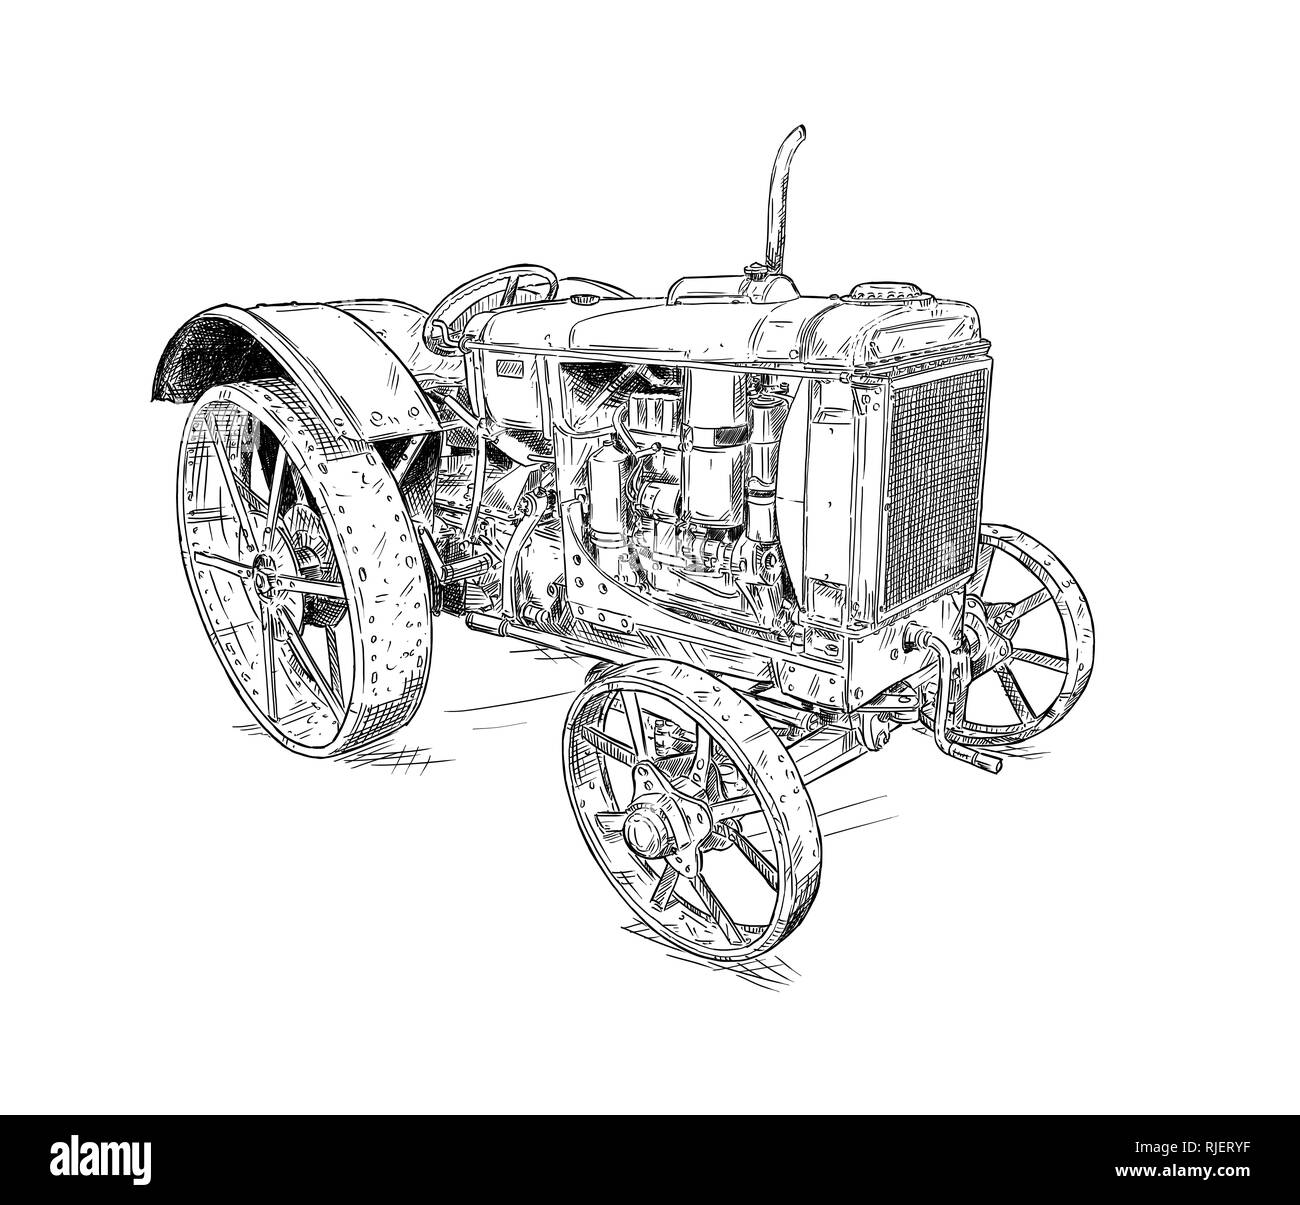 Cartoon or Comic Style Drawing of Old or Vintage Tractor - Stock Image